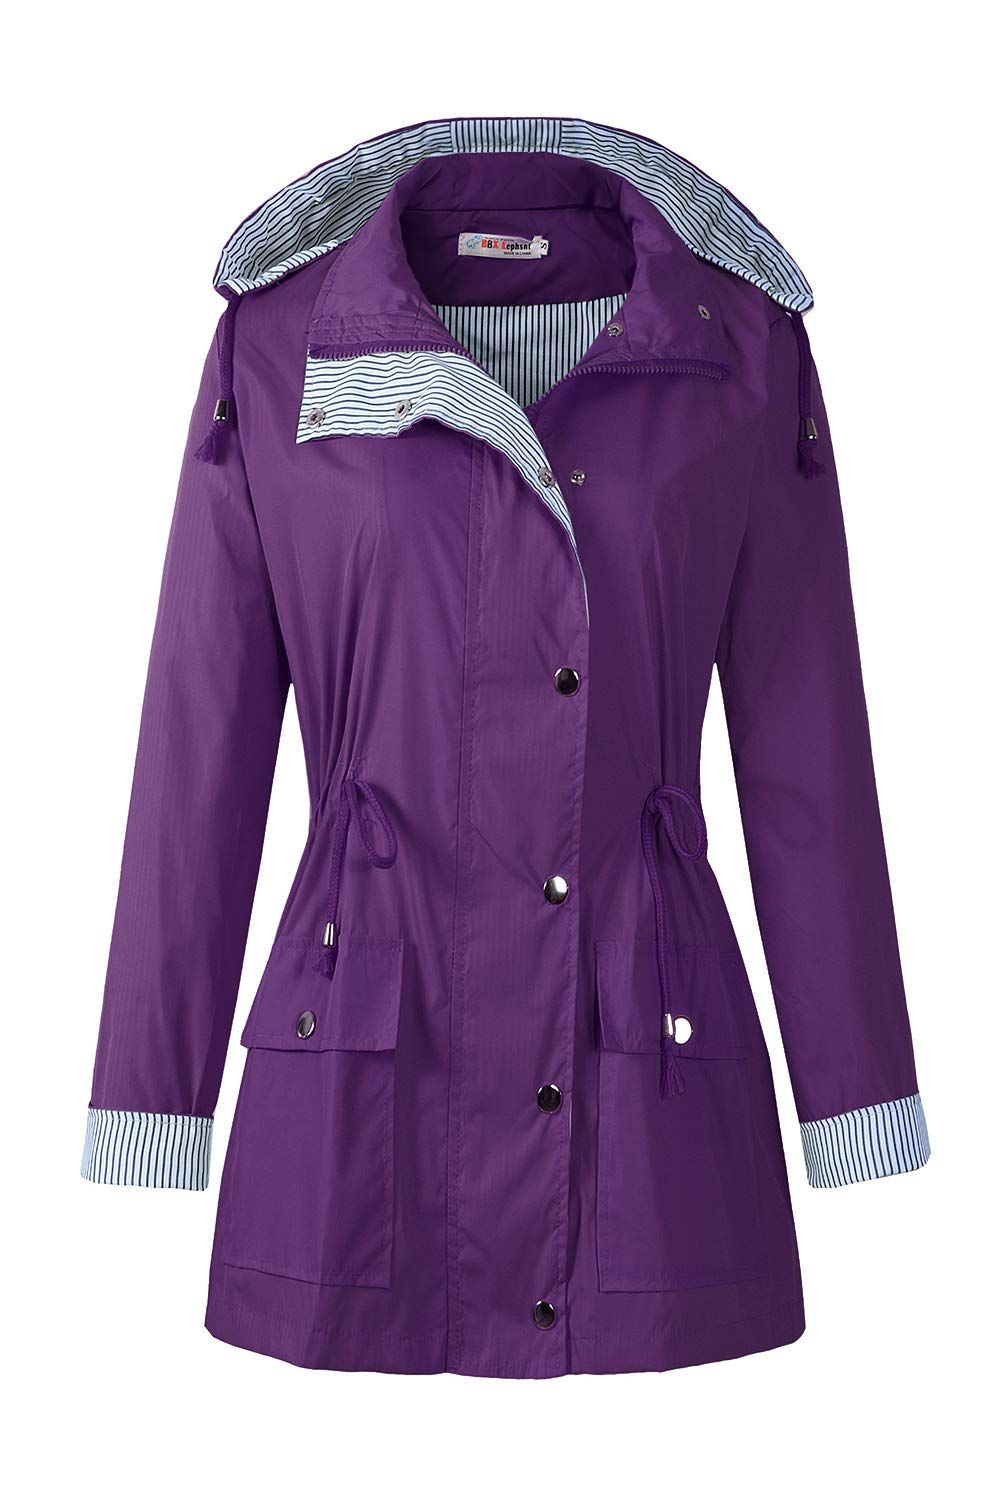 7c26b0e39 BBX Lephsnt Womens Waterproof Jacket Hooded Lightweigth Raincoat Active  Outdoor Trench Coat >>> Learn more by visiting the image link.